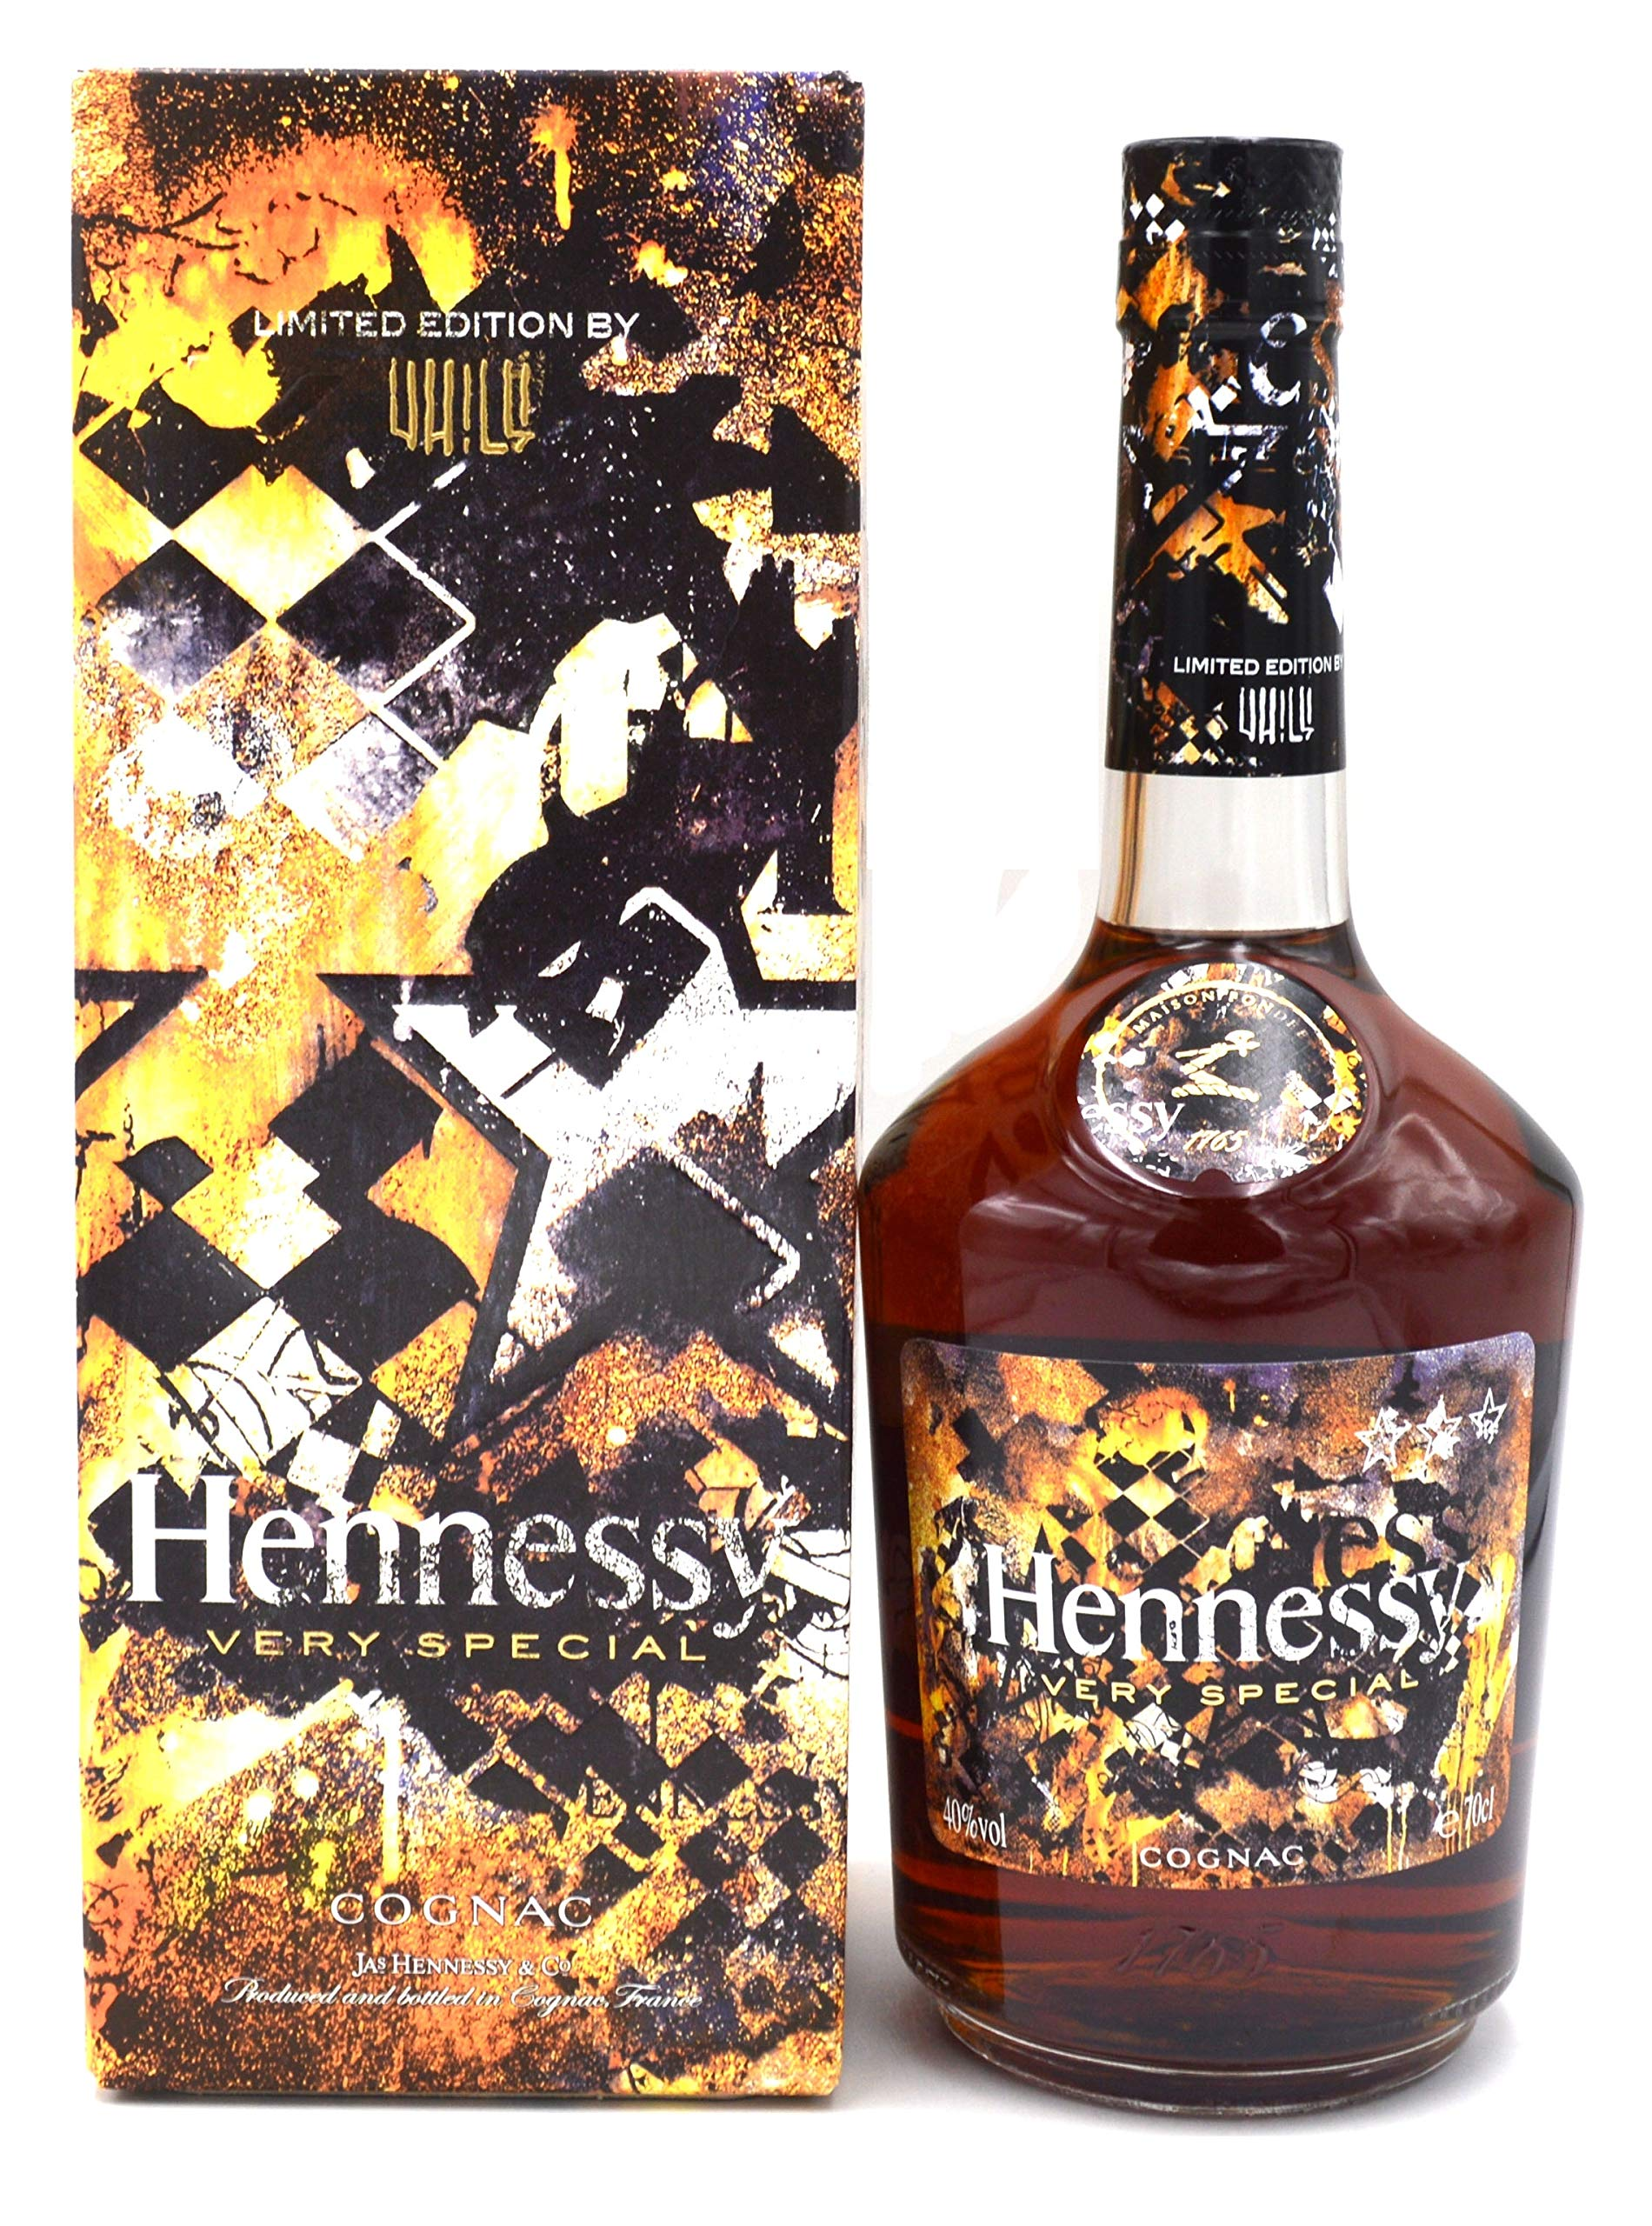 Hennessy-VS-Cognac-Limited-Edition-by-VHILS-07l